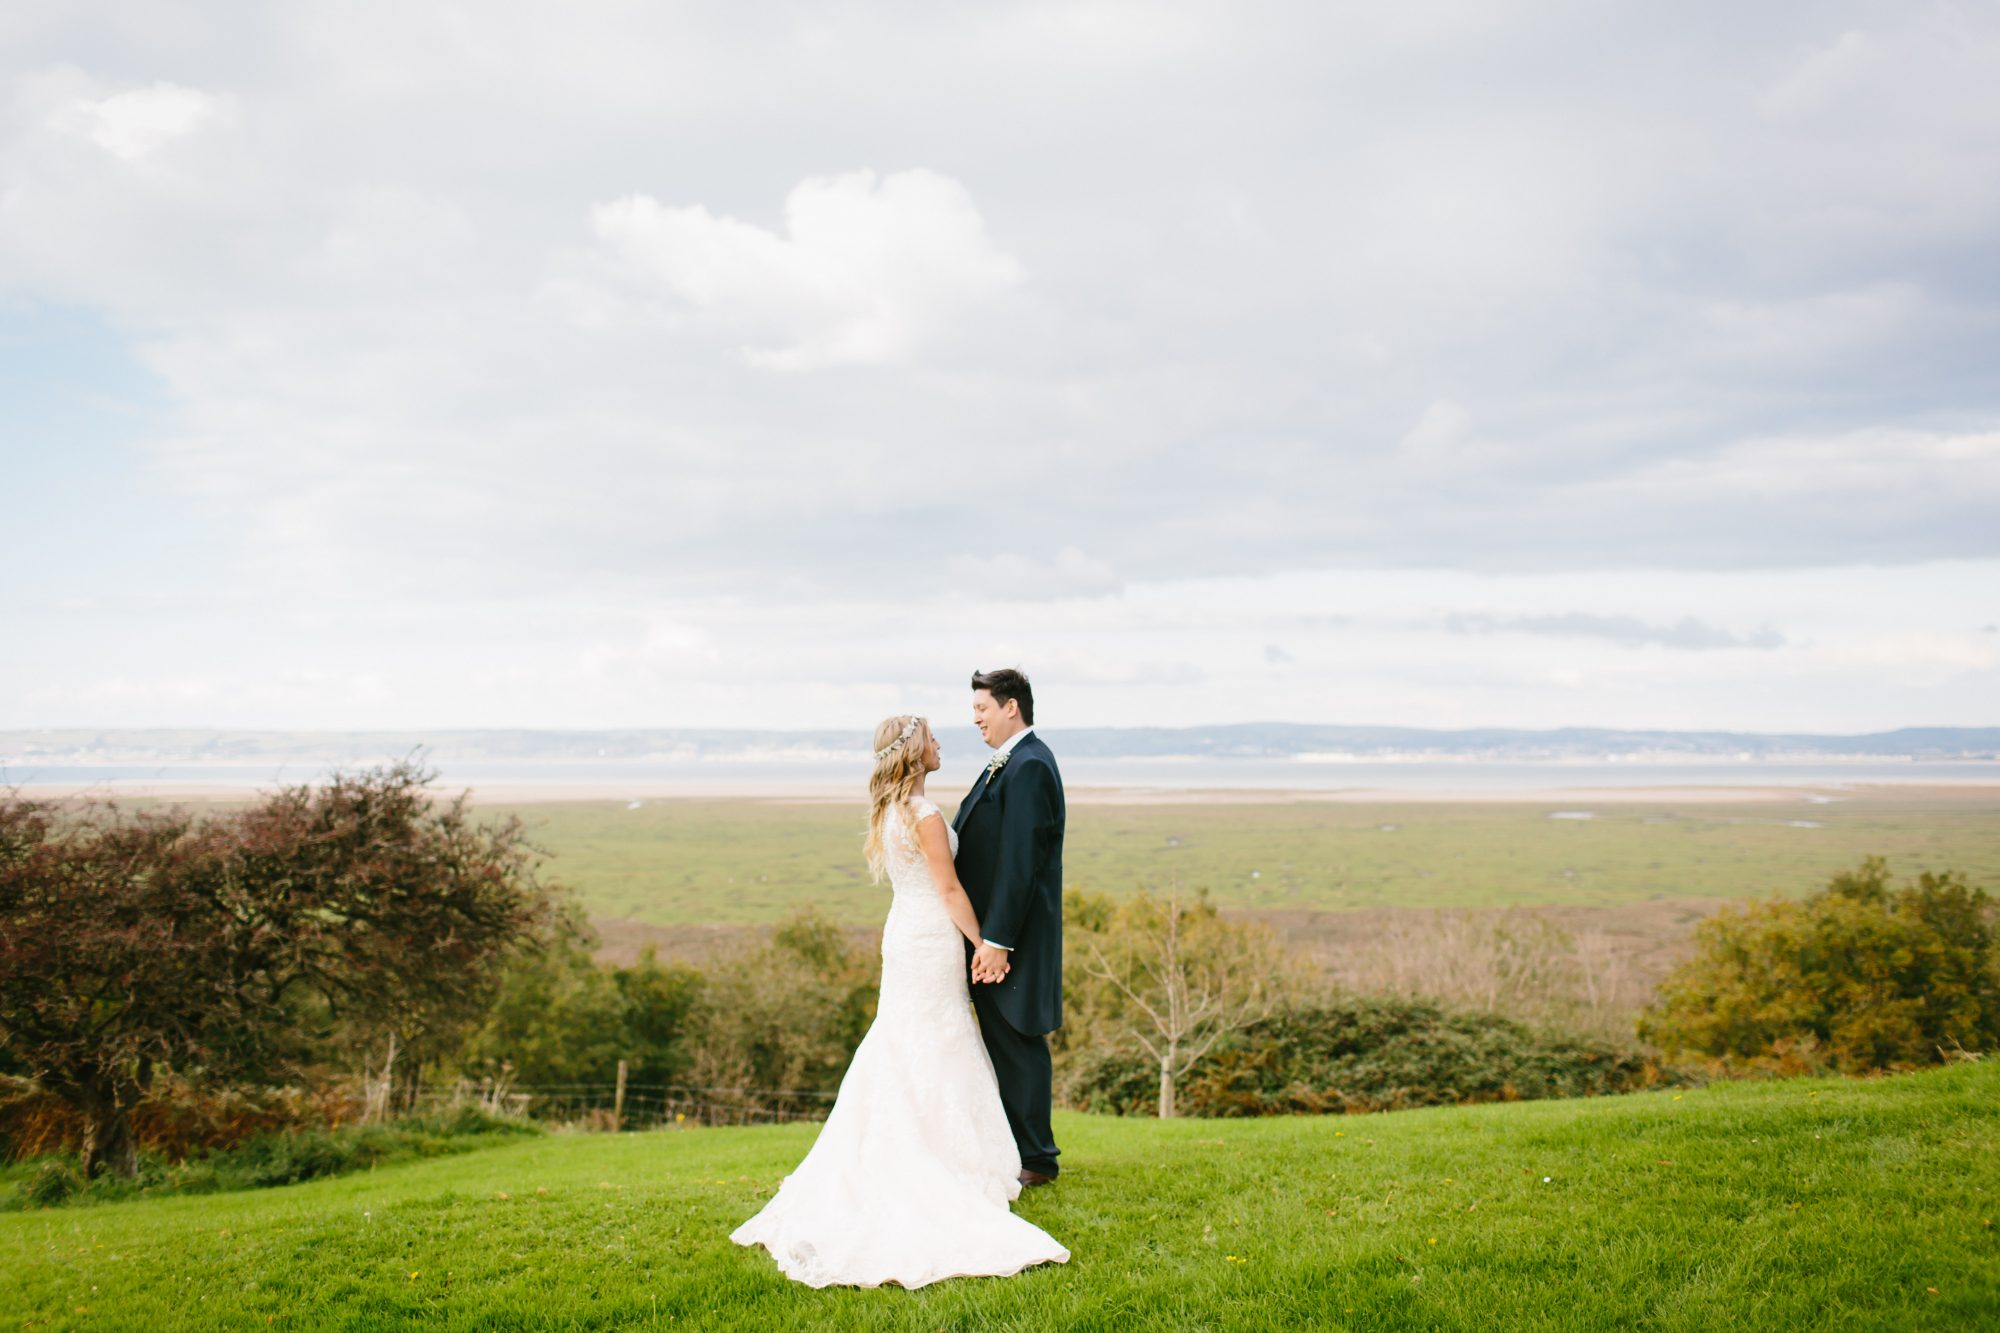 Overlooking the North Gower Coastline. Bride and Groom, loving look. Holding hands. Perfectly peaceful wedding